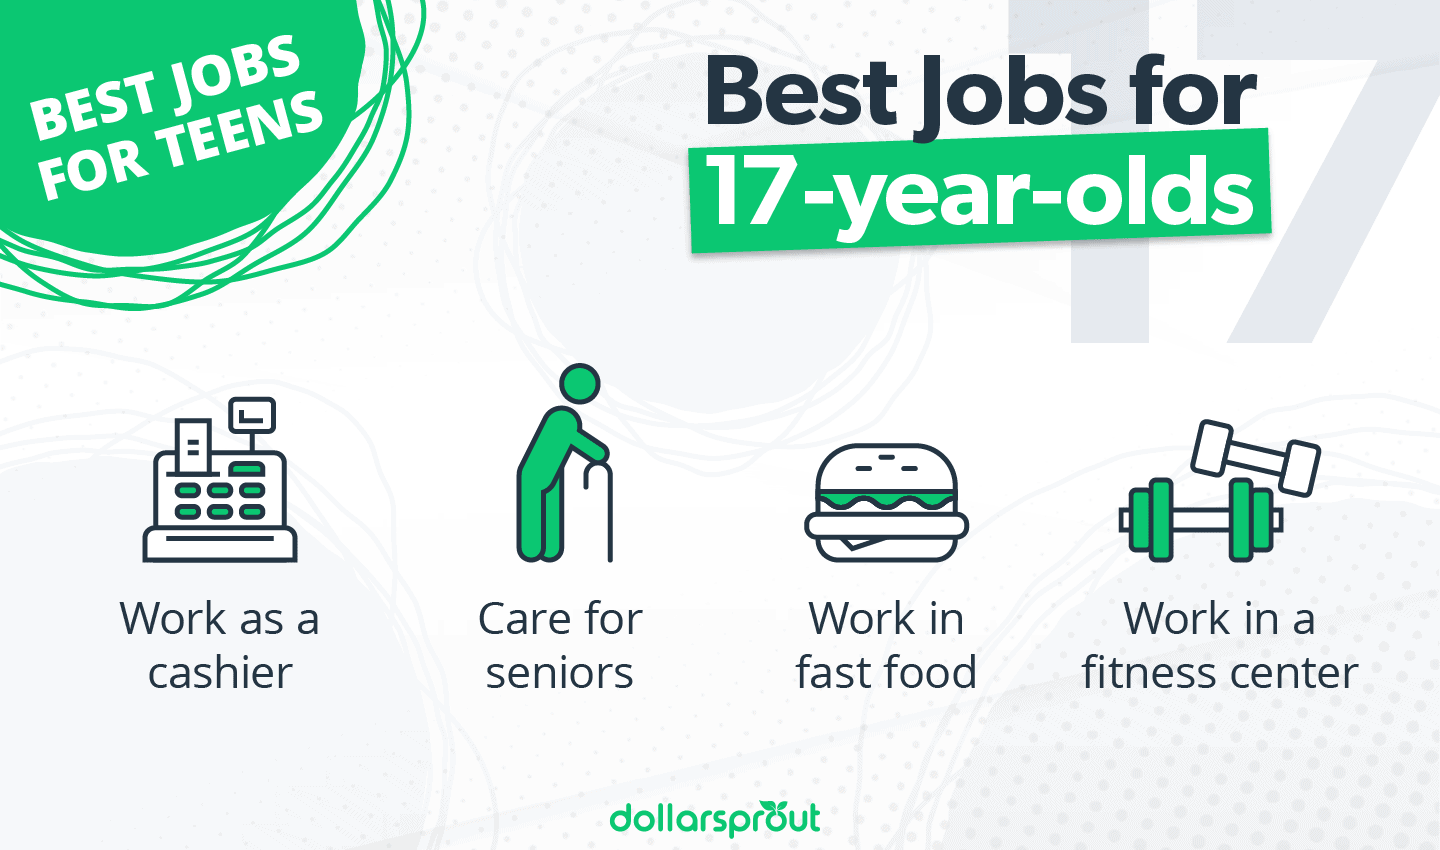 Best Jobs for 17-year-olds